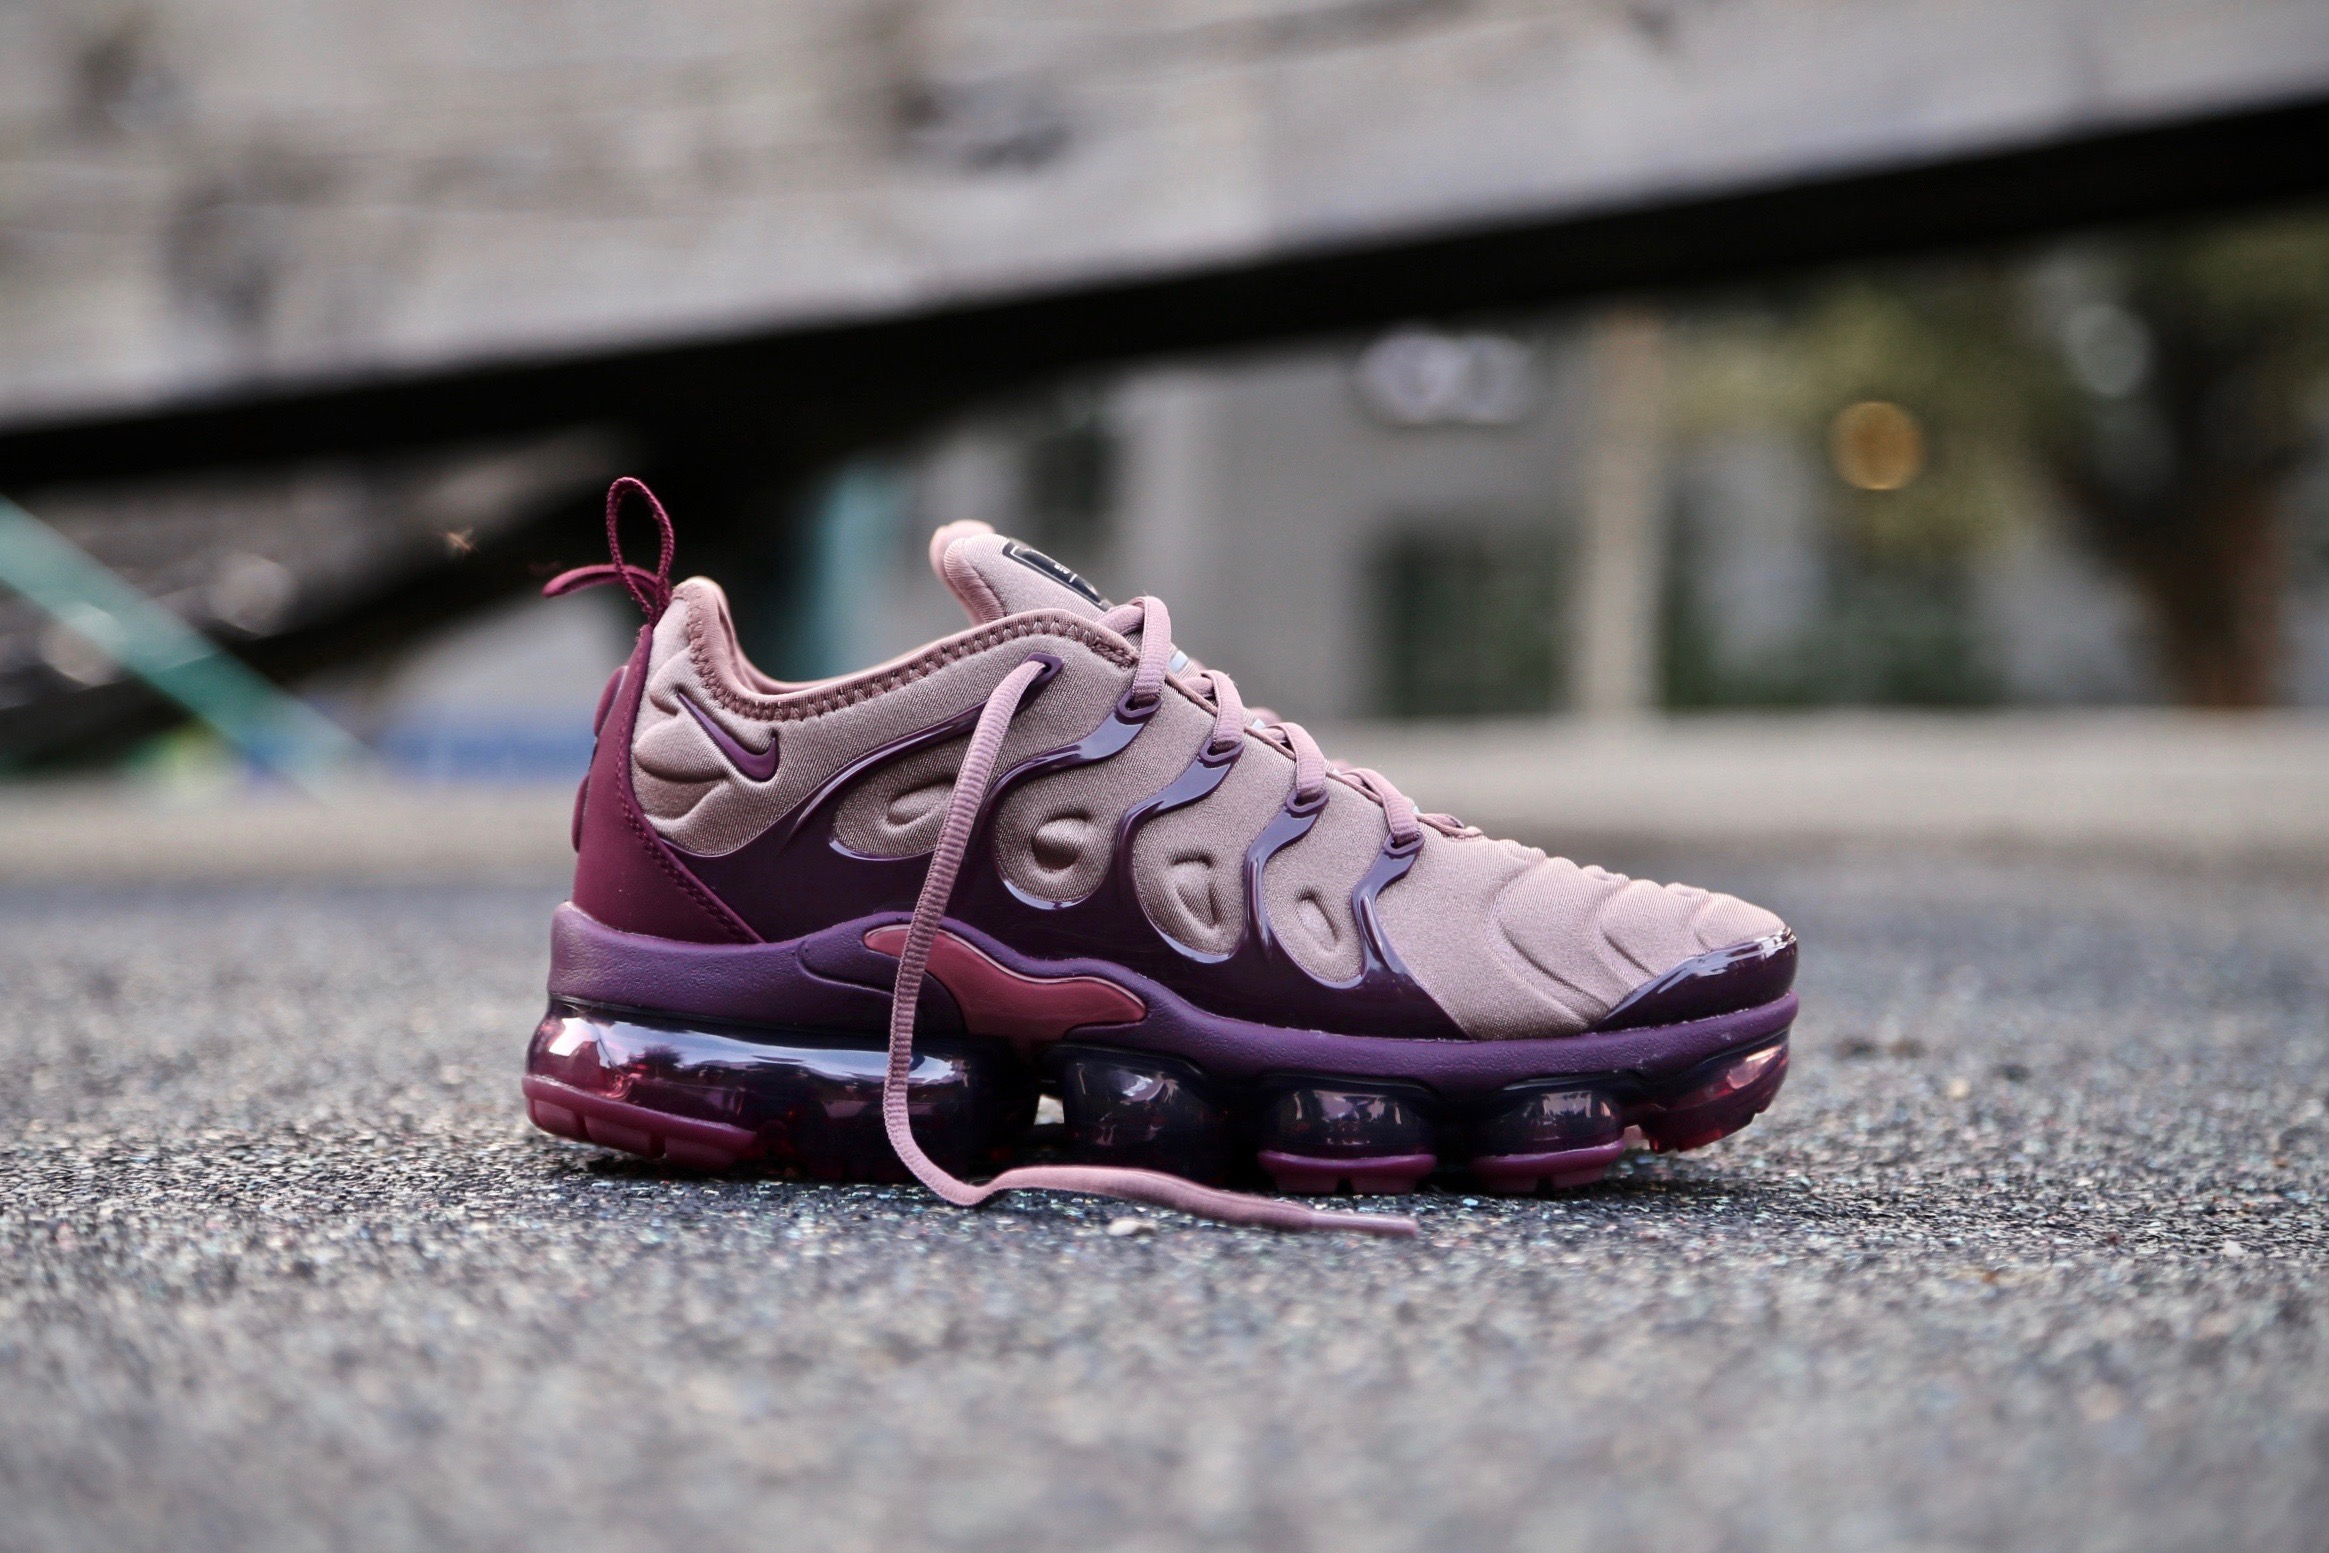 cheaper 187af a67e4 Nike W Air VaporMax Plus - Smokey Mauve / Bordeaux